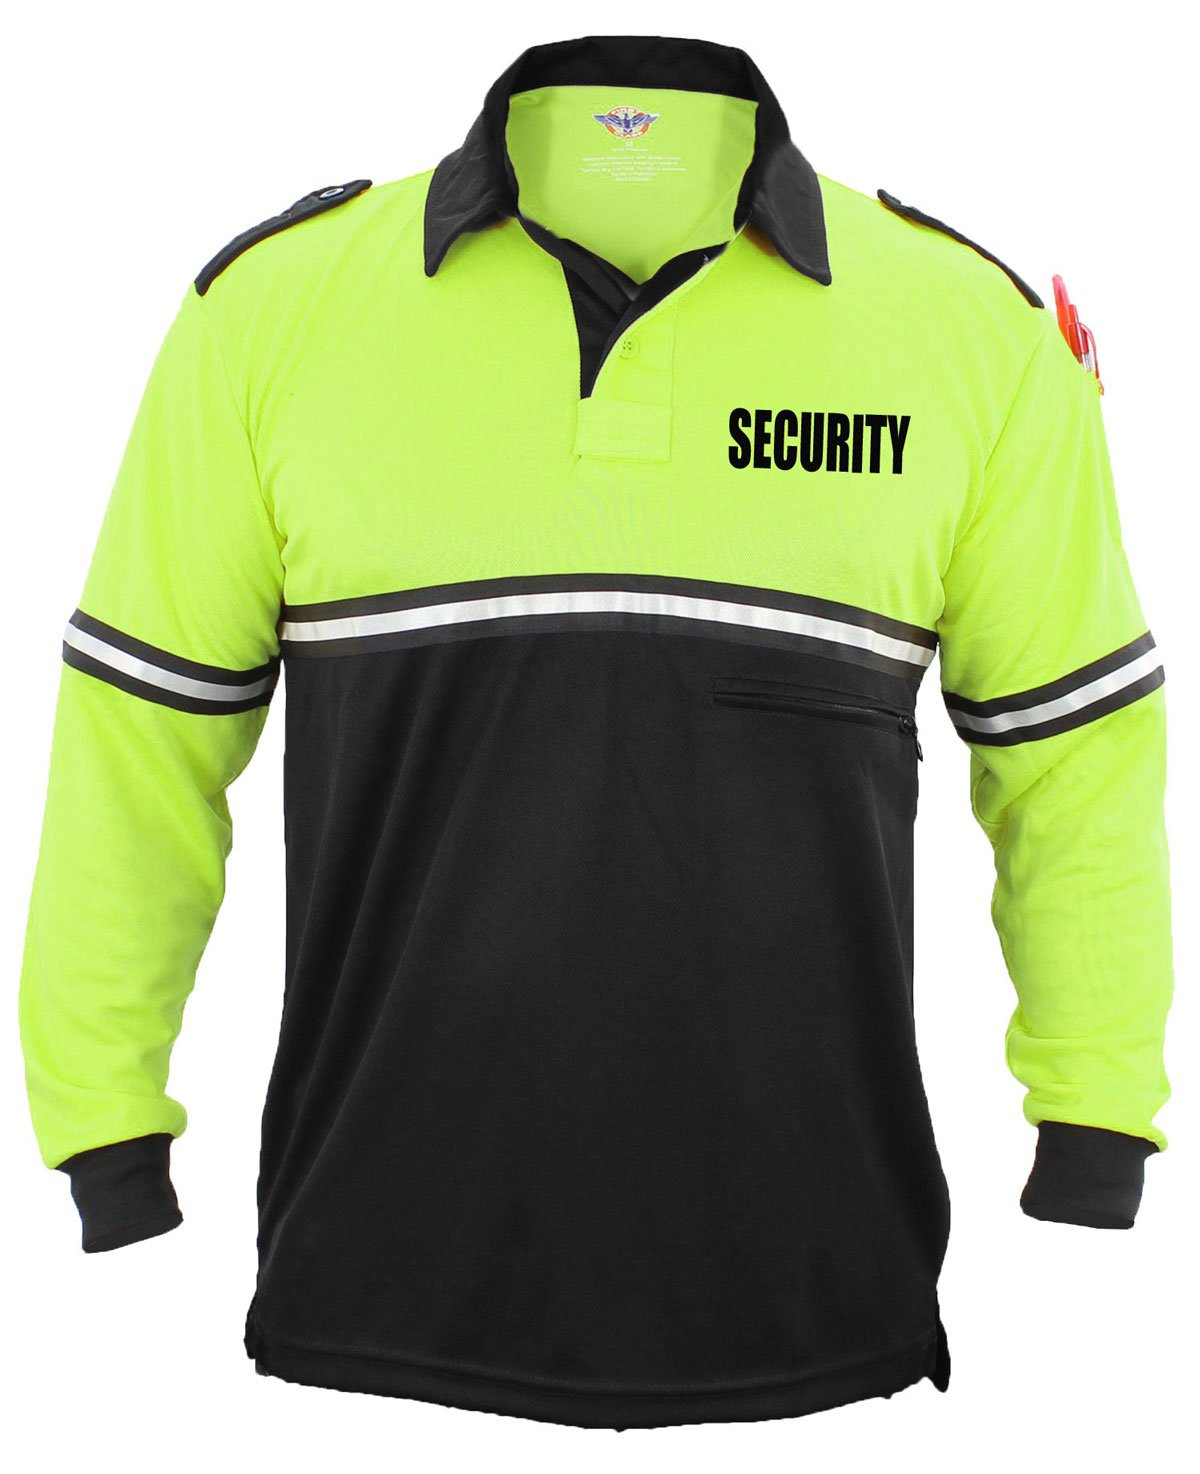 First Class Security 100% Polyester Two Tone Bike Patrol Shirt w/ Zipper Pocket - Long Sleeve (2X-Large, Lime Green and Black)